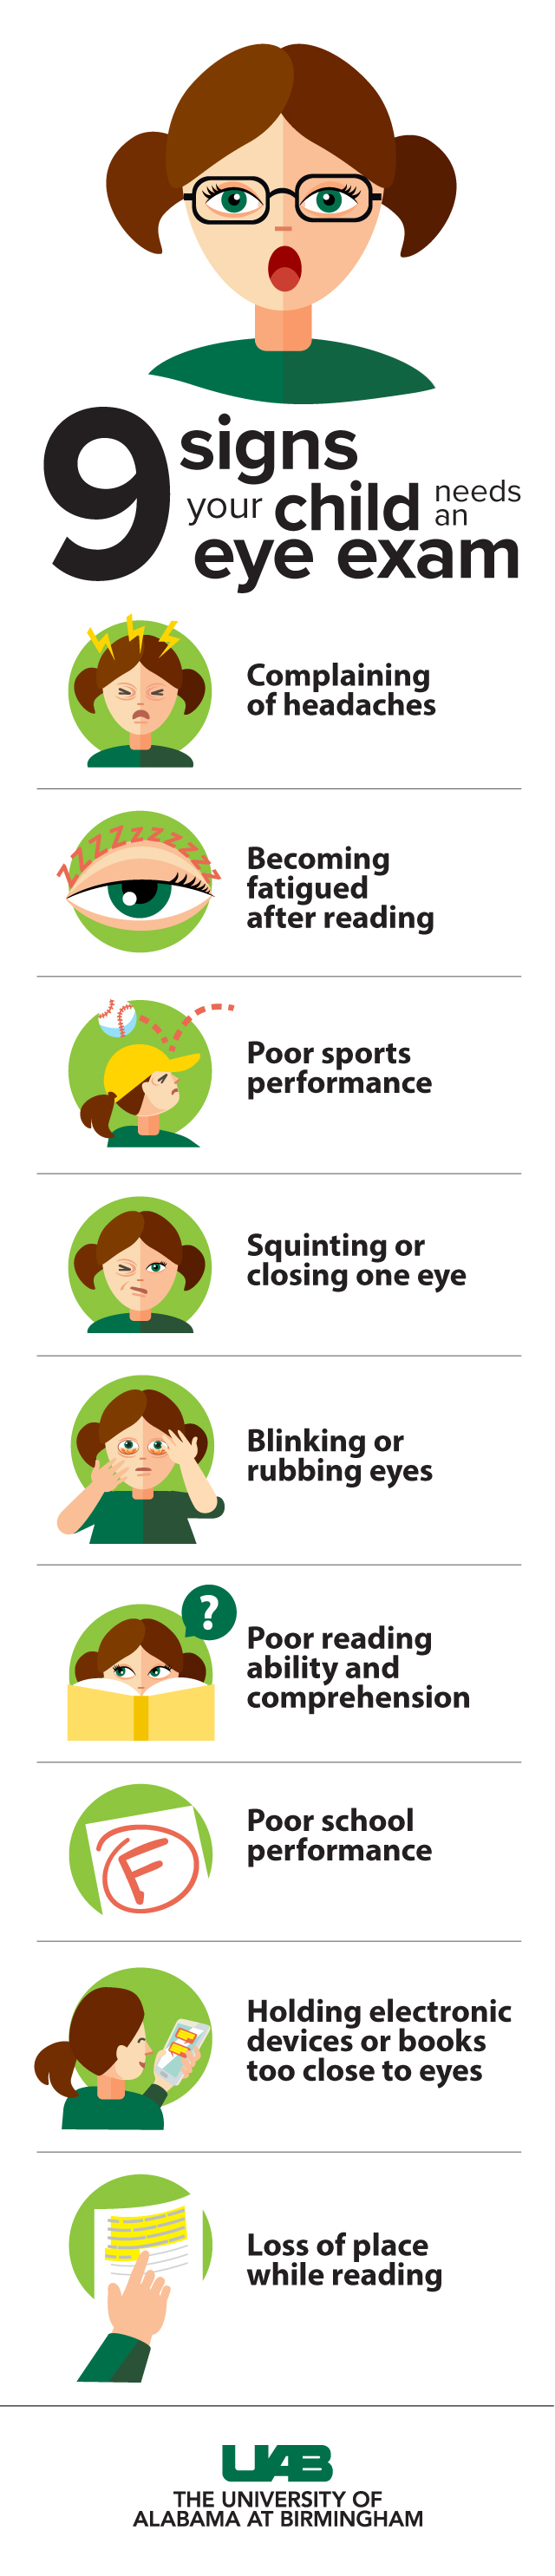 simplified 9 signs child may need eye exam graphic